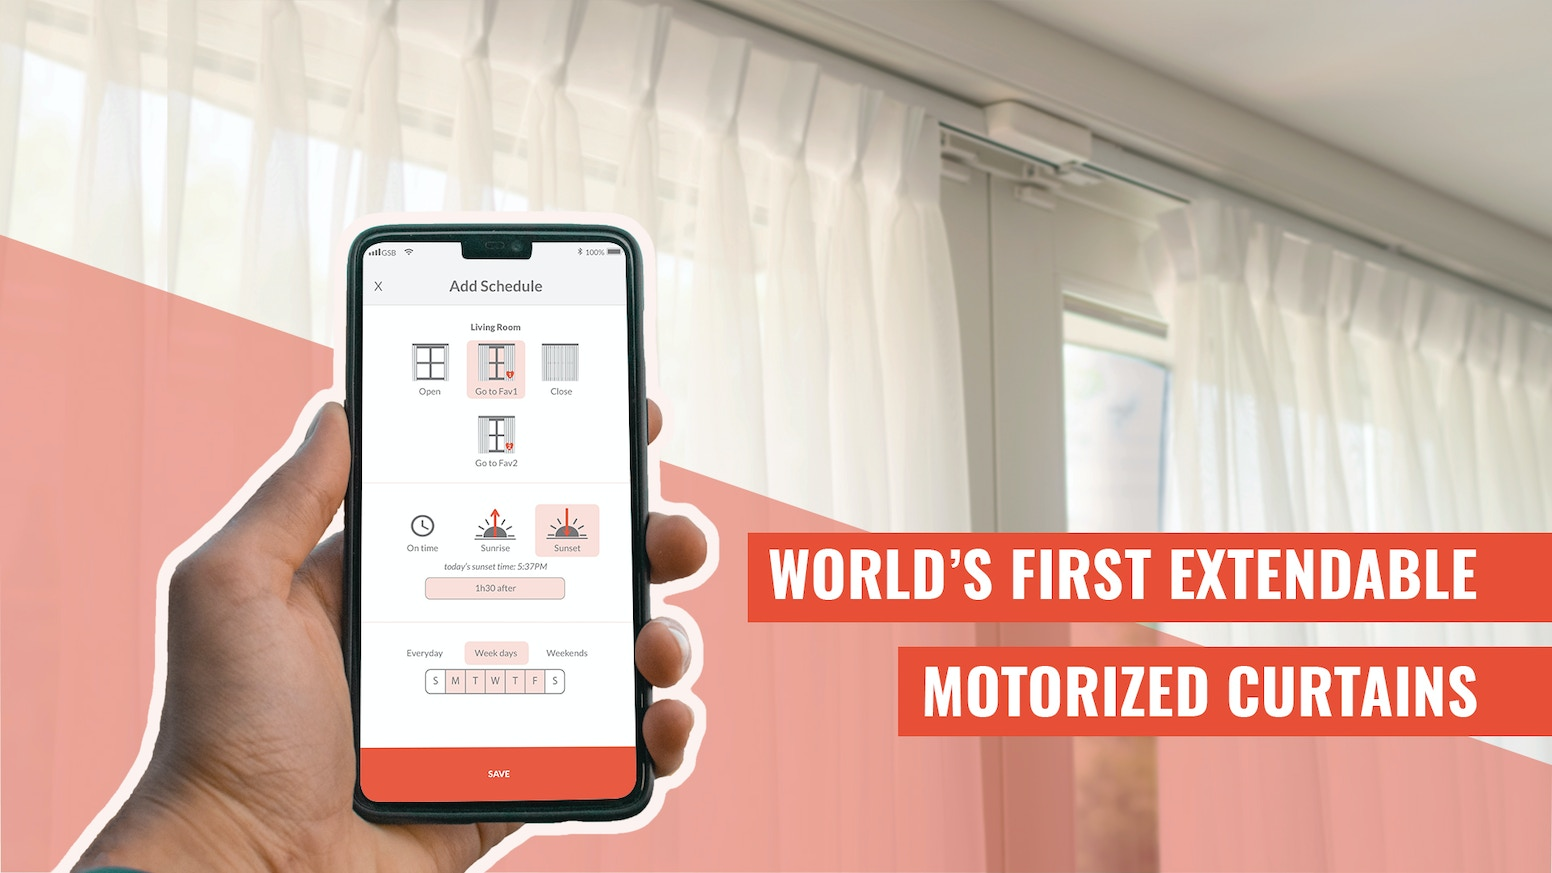 Universal-fit extendable motorized curtain track system works with Alexa, Google Assistant, Siri Shortcuts and more.